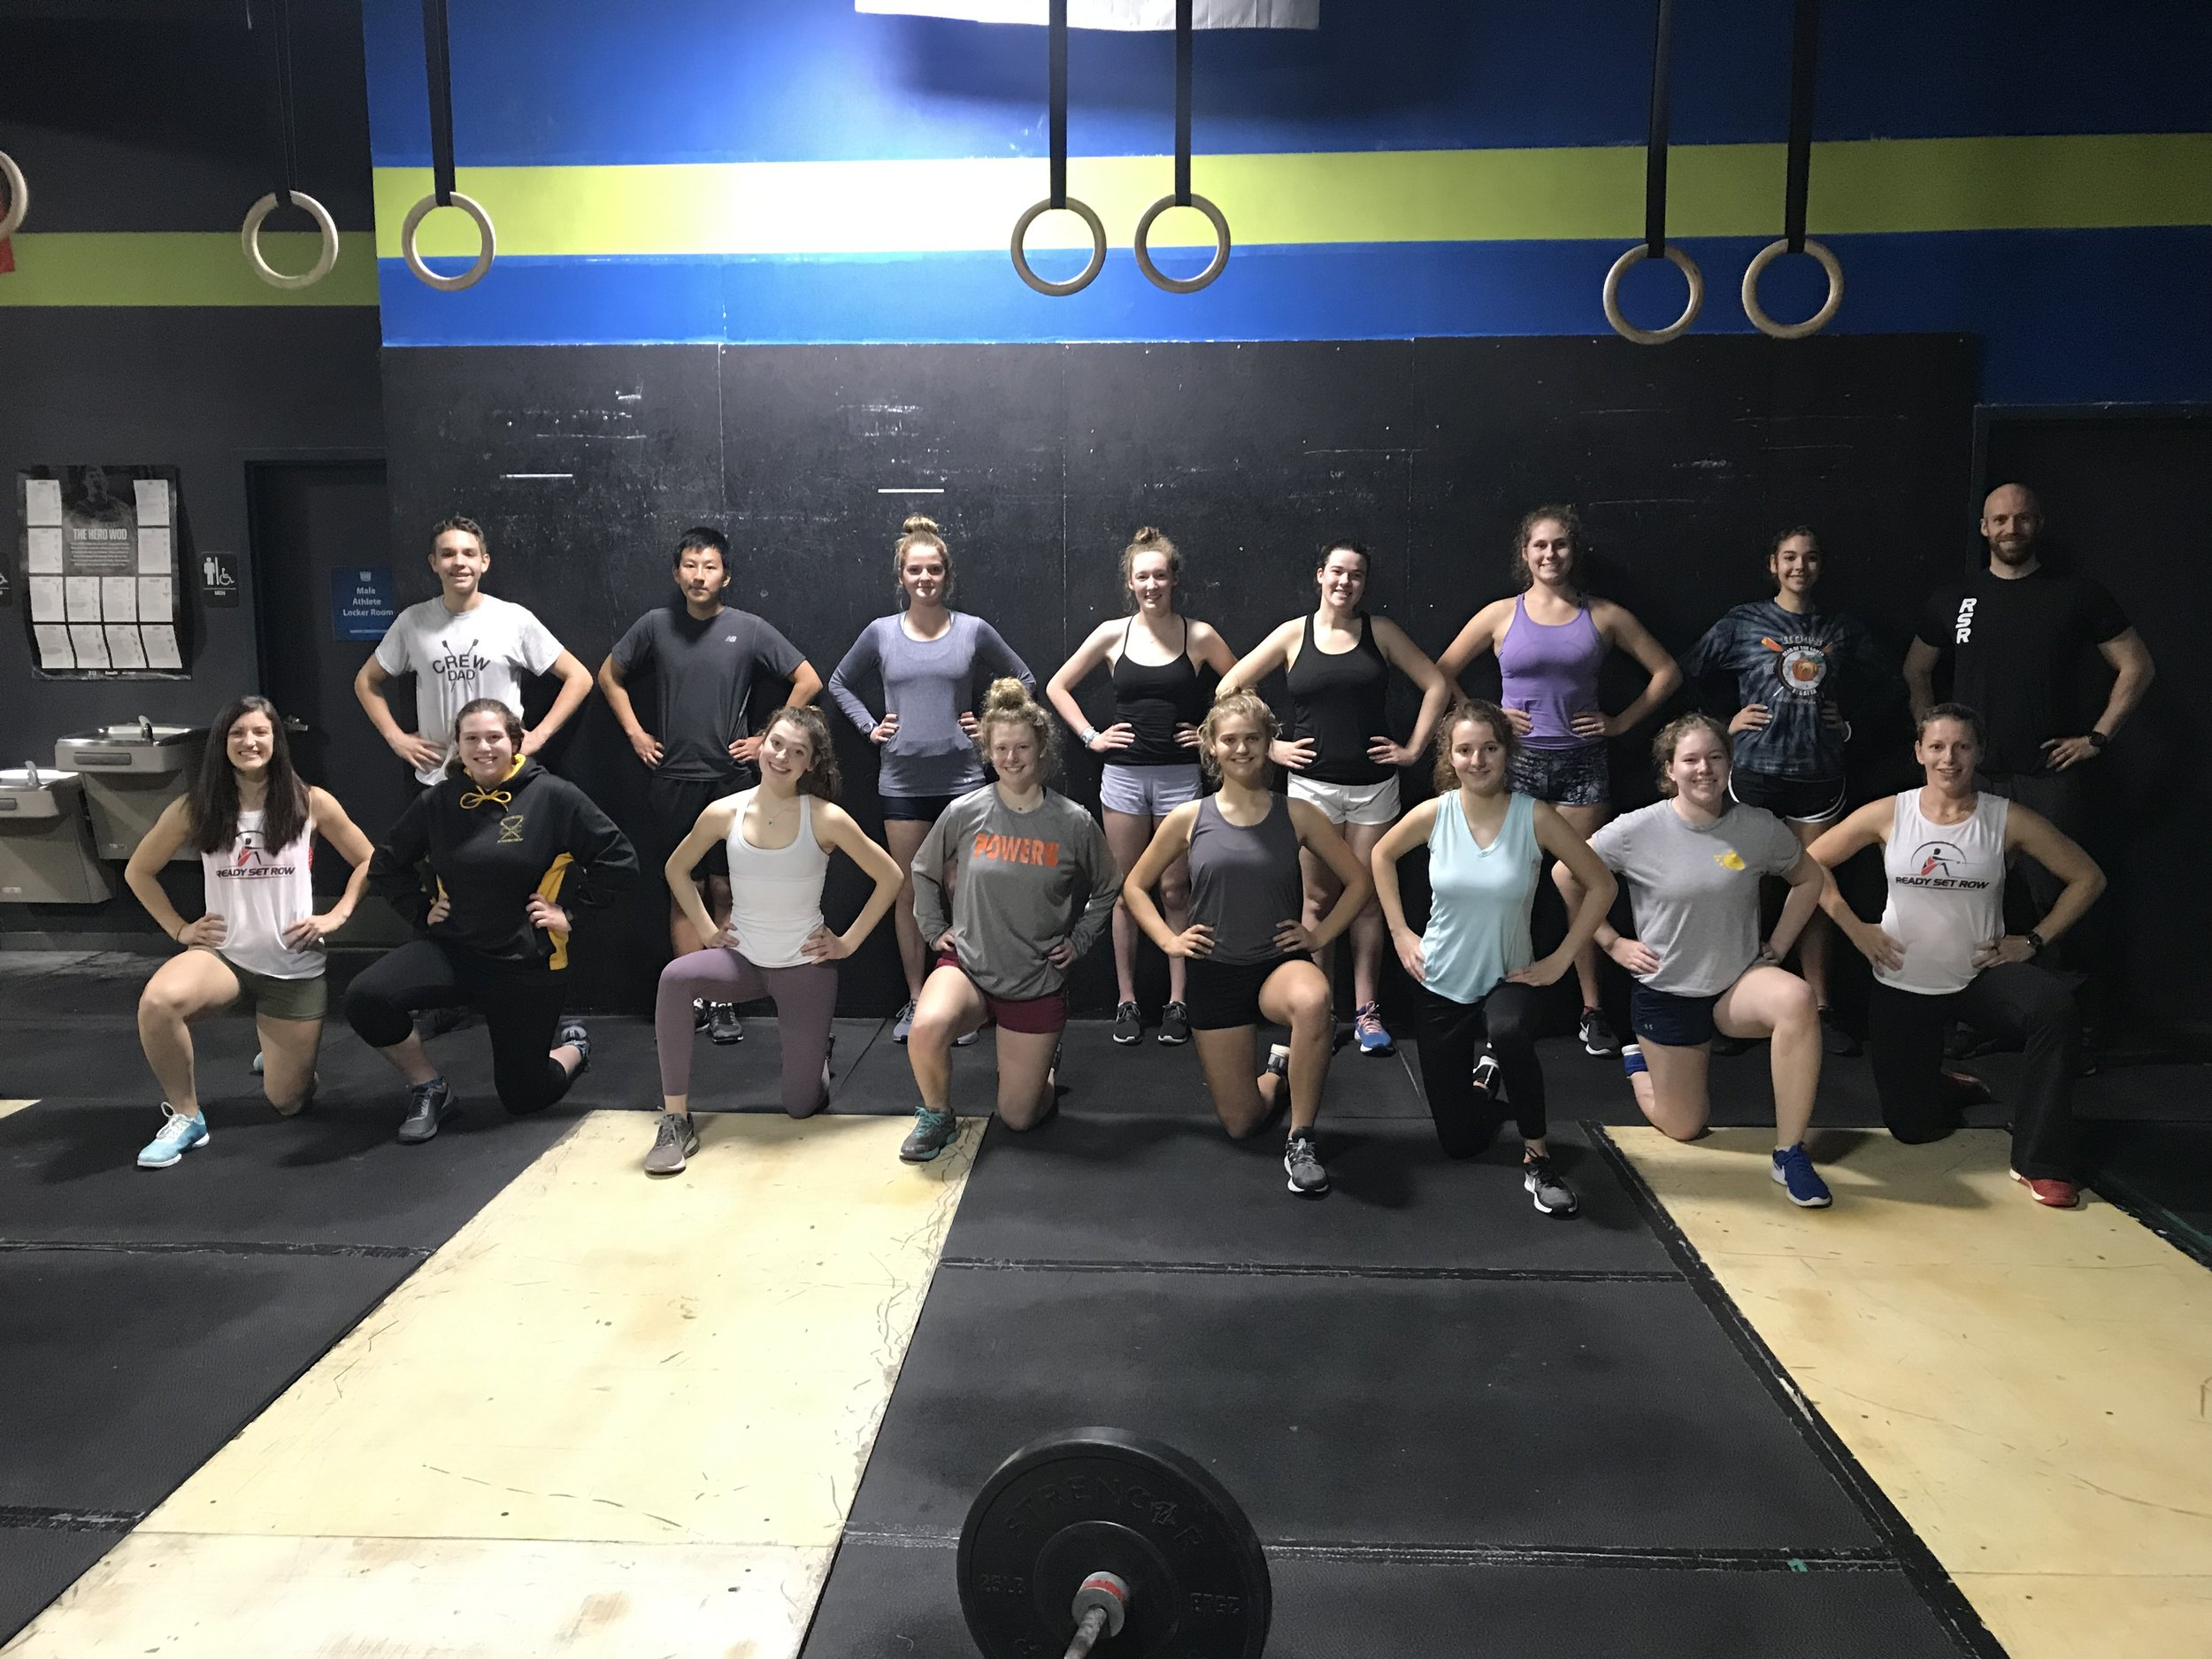 Athletes joined us from NC, NY, CO, VA, FL, and CT for our RSR 3-DAY 2K Clinic - and we had a blast!